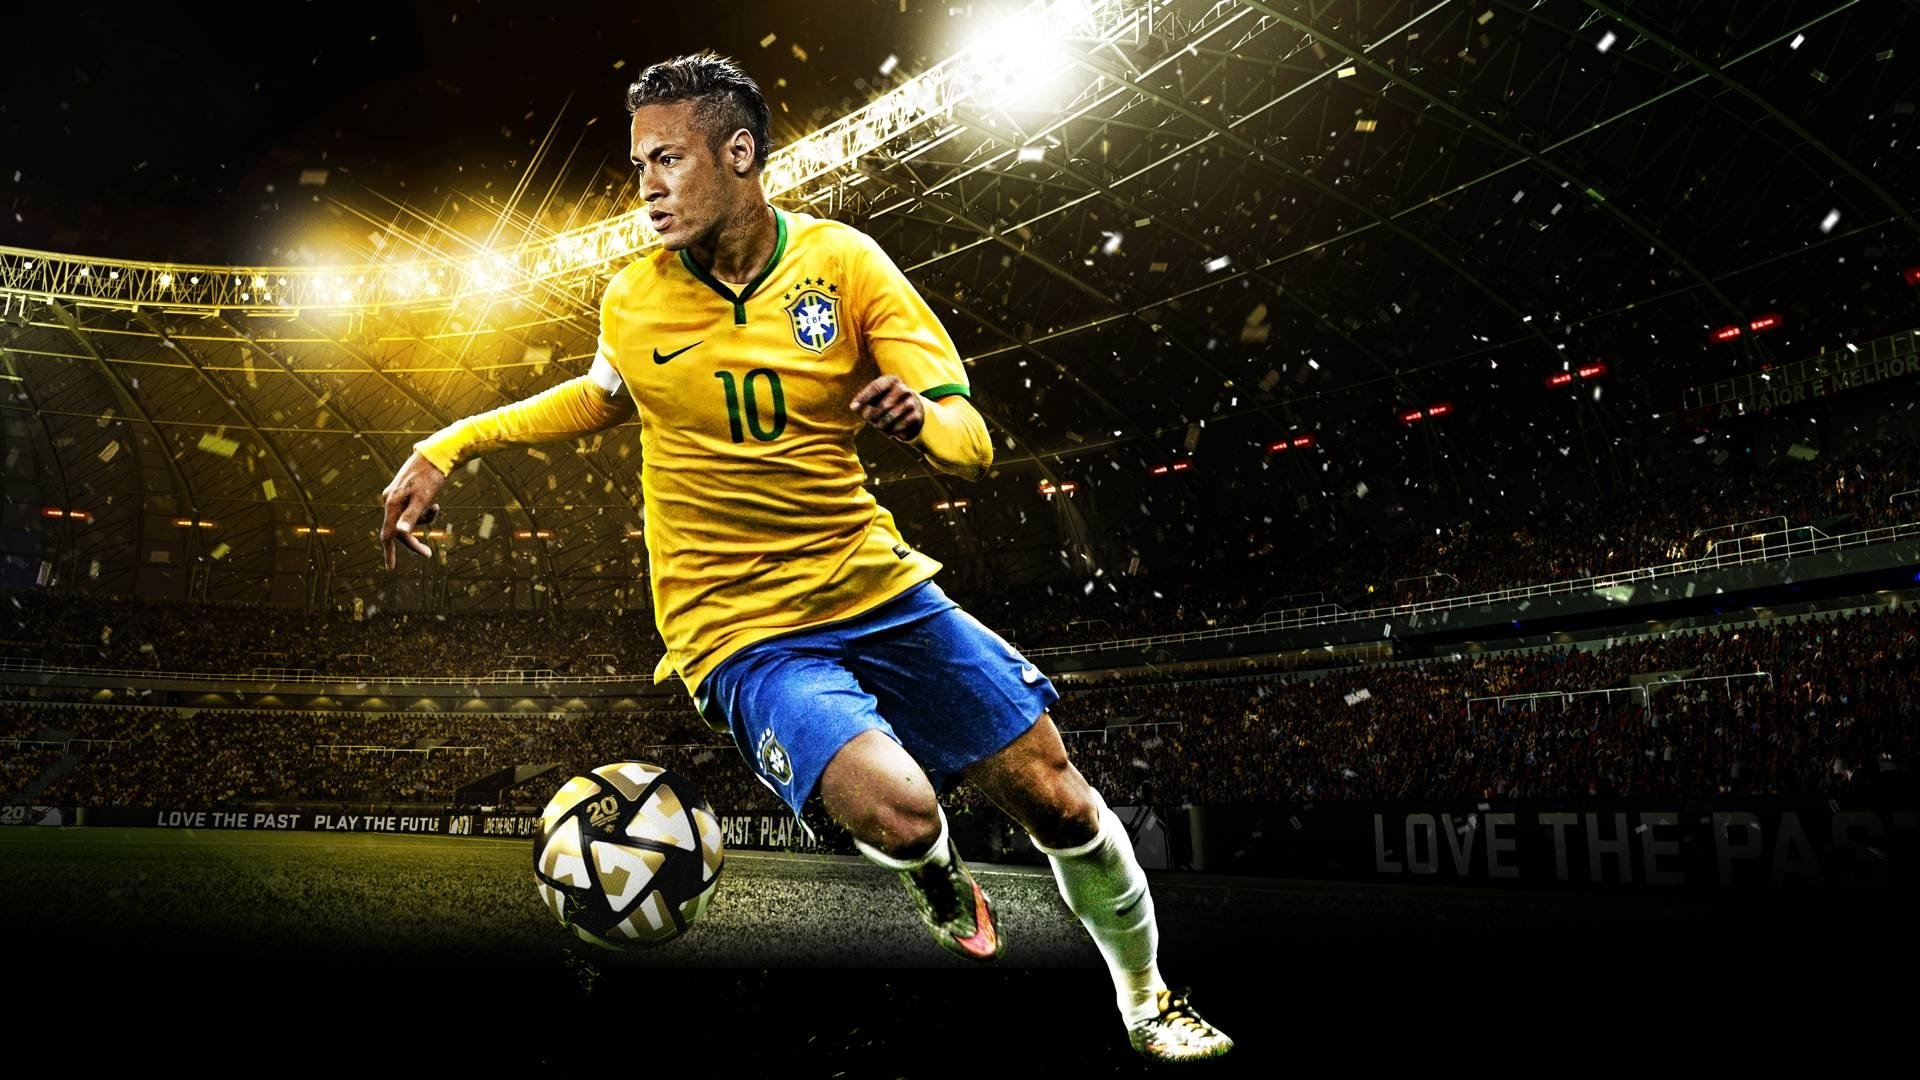 Hd wallpaper neymar - Hd Sfondo Id 799165